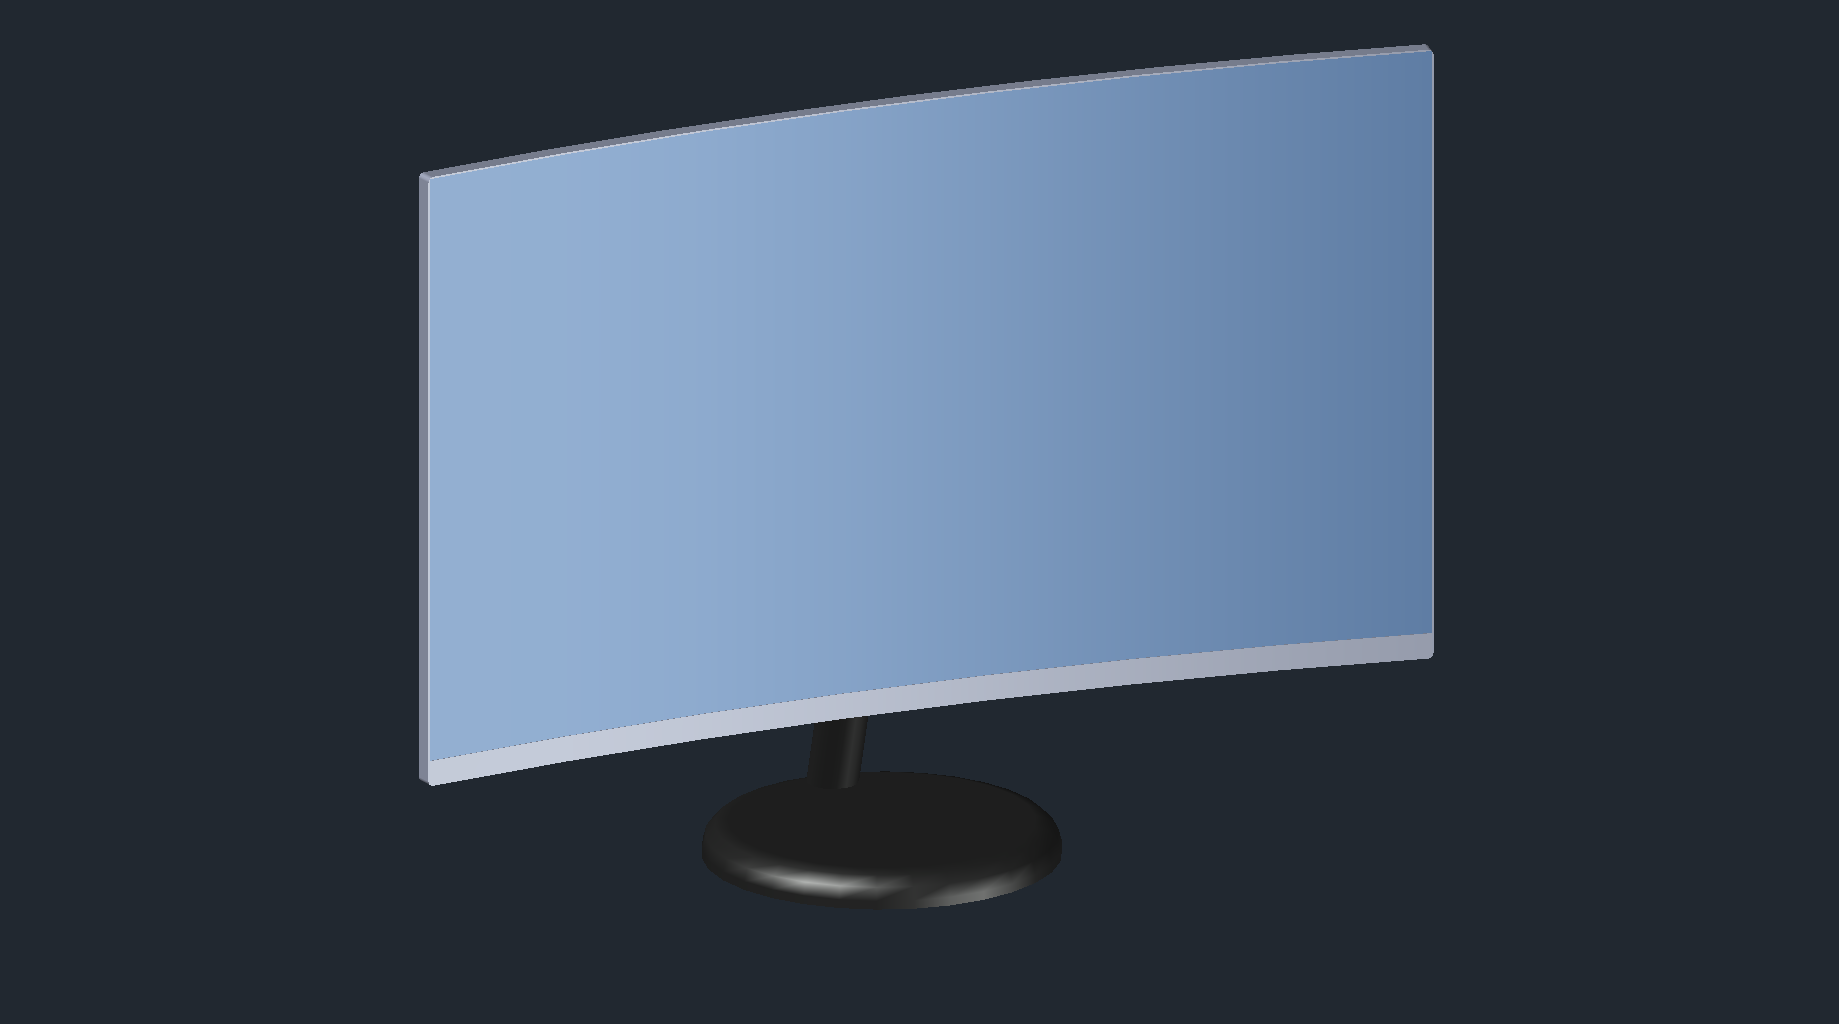 DOWNLOAD Samsung_27_Curved_QLED_WQHD_Monitor.dwg